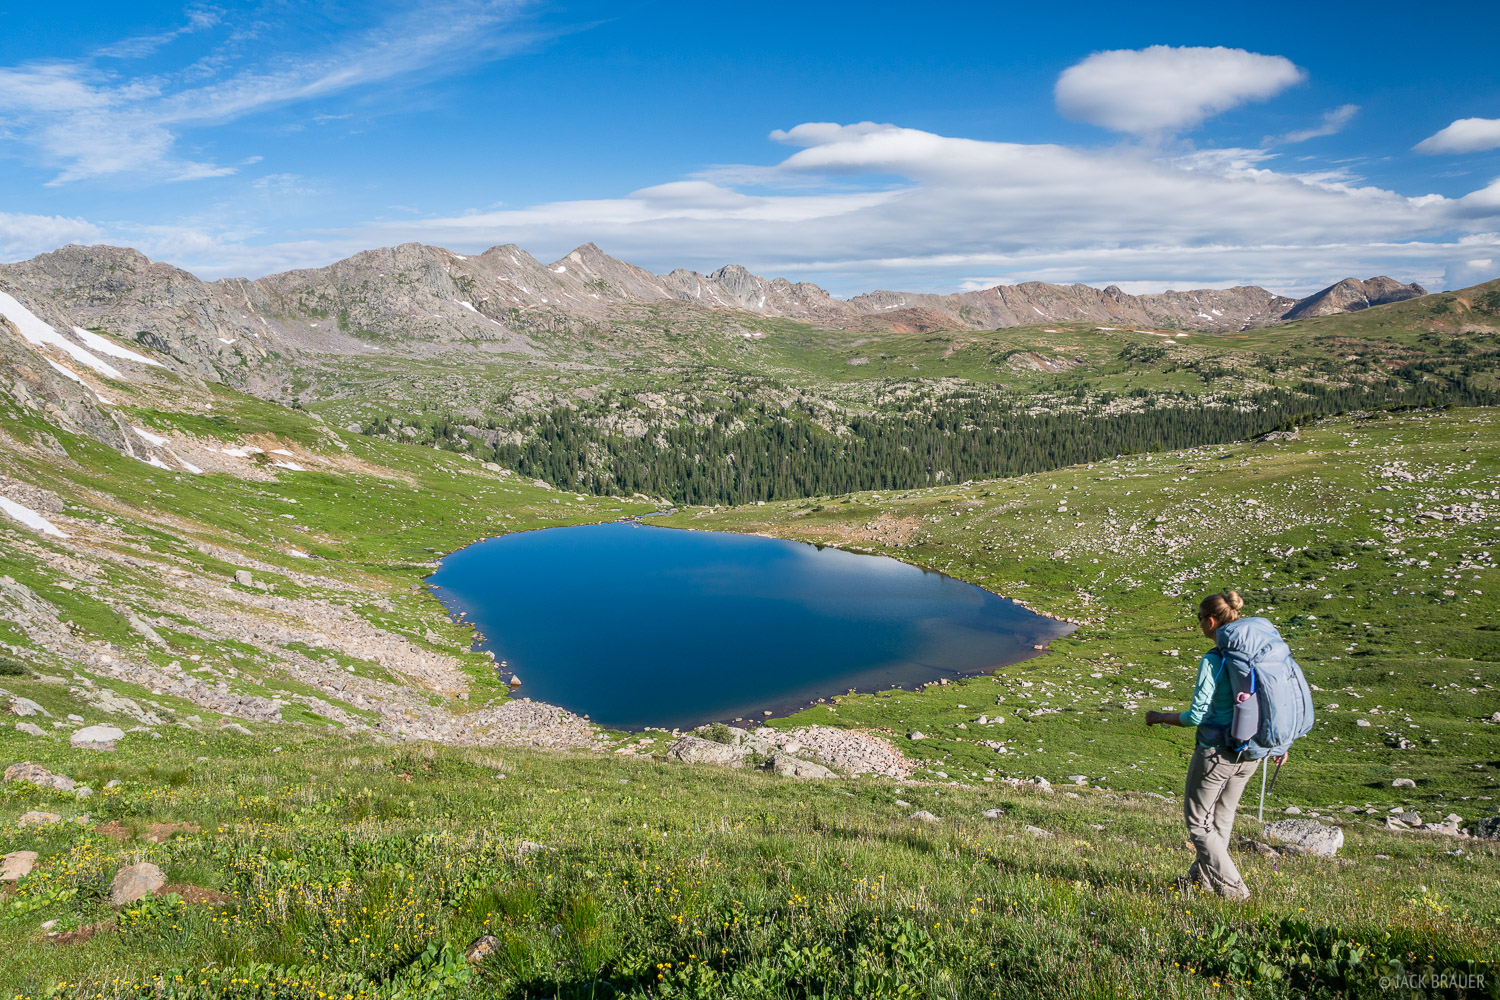 Hiking over Missouri Pass with Treasure Vault Lake ahead. This area at the head of Cross Creek is a tundra paradise!